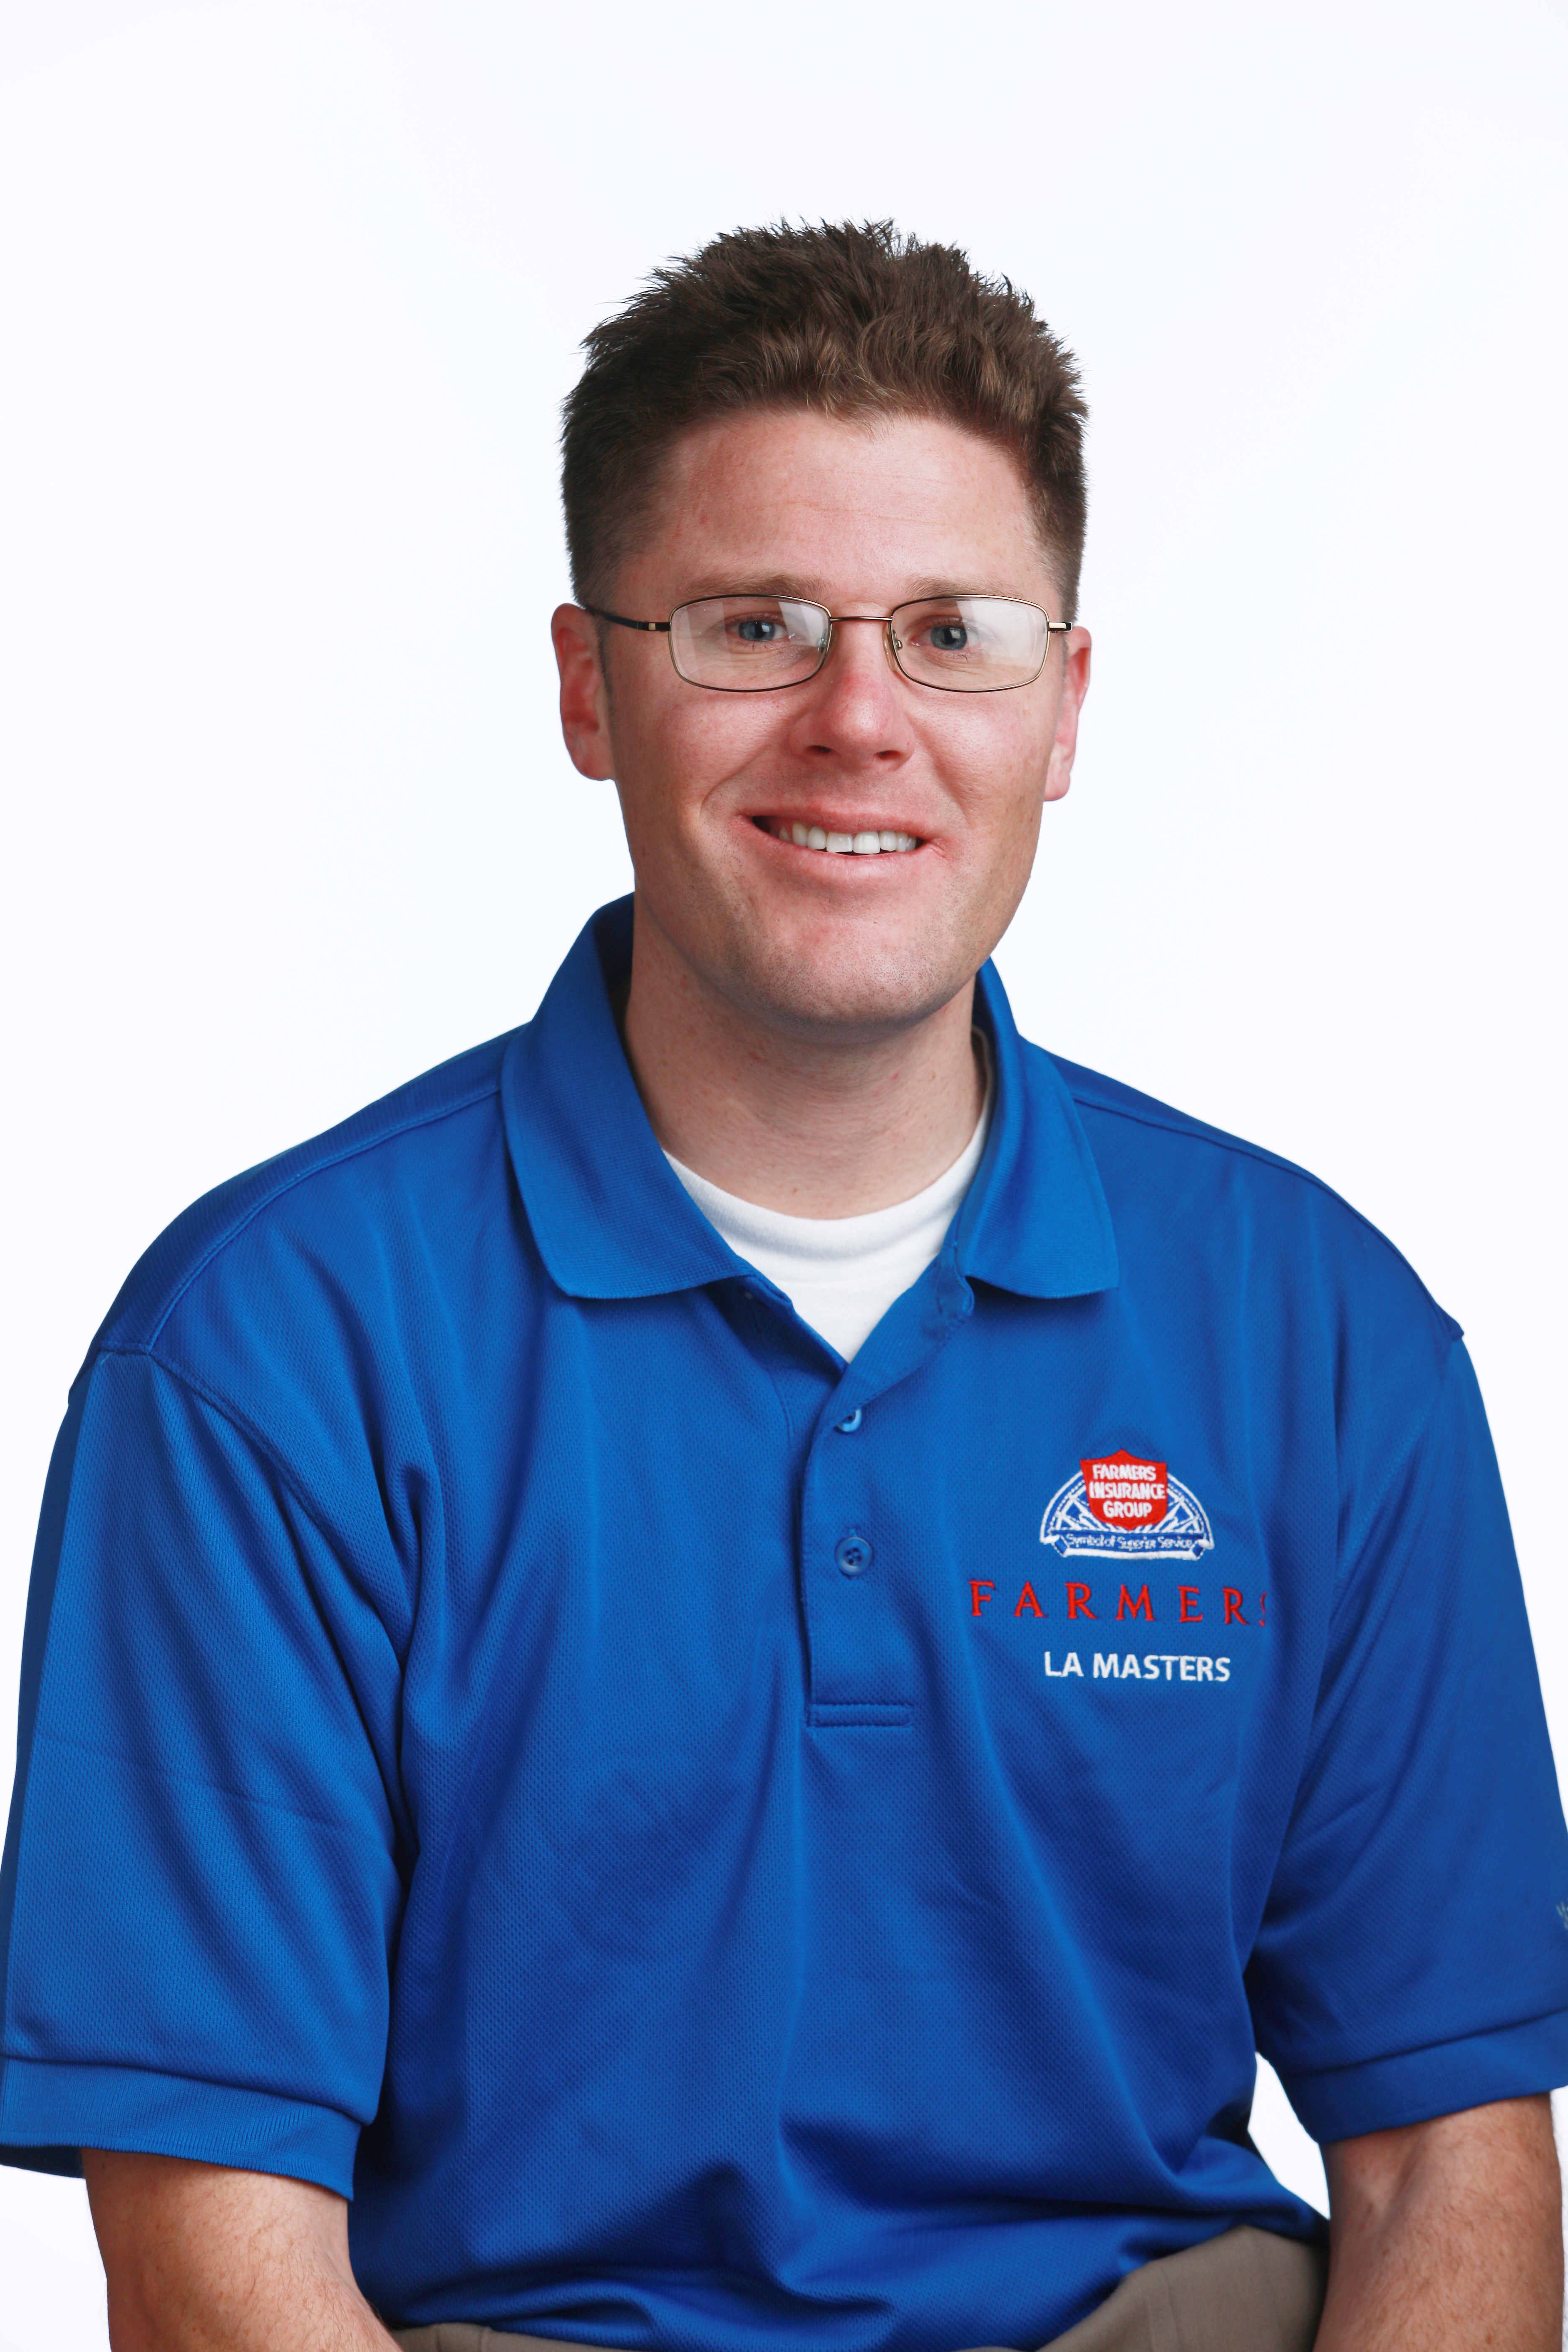 Logan Moore Farmers Insurance profile image